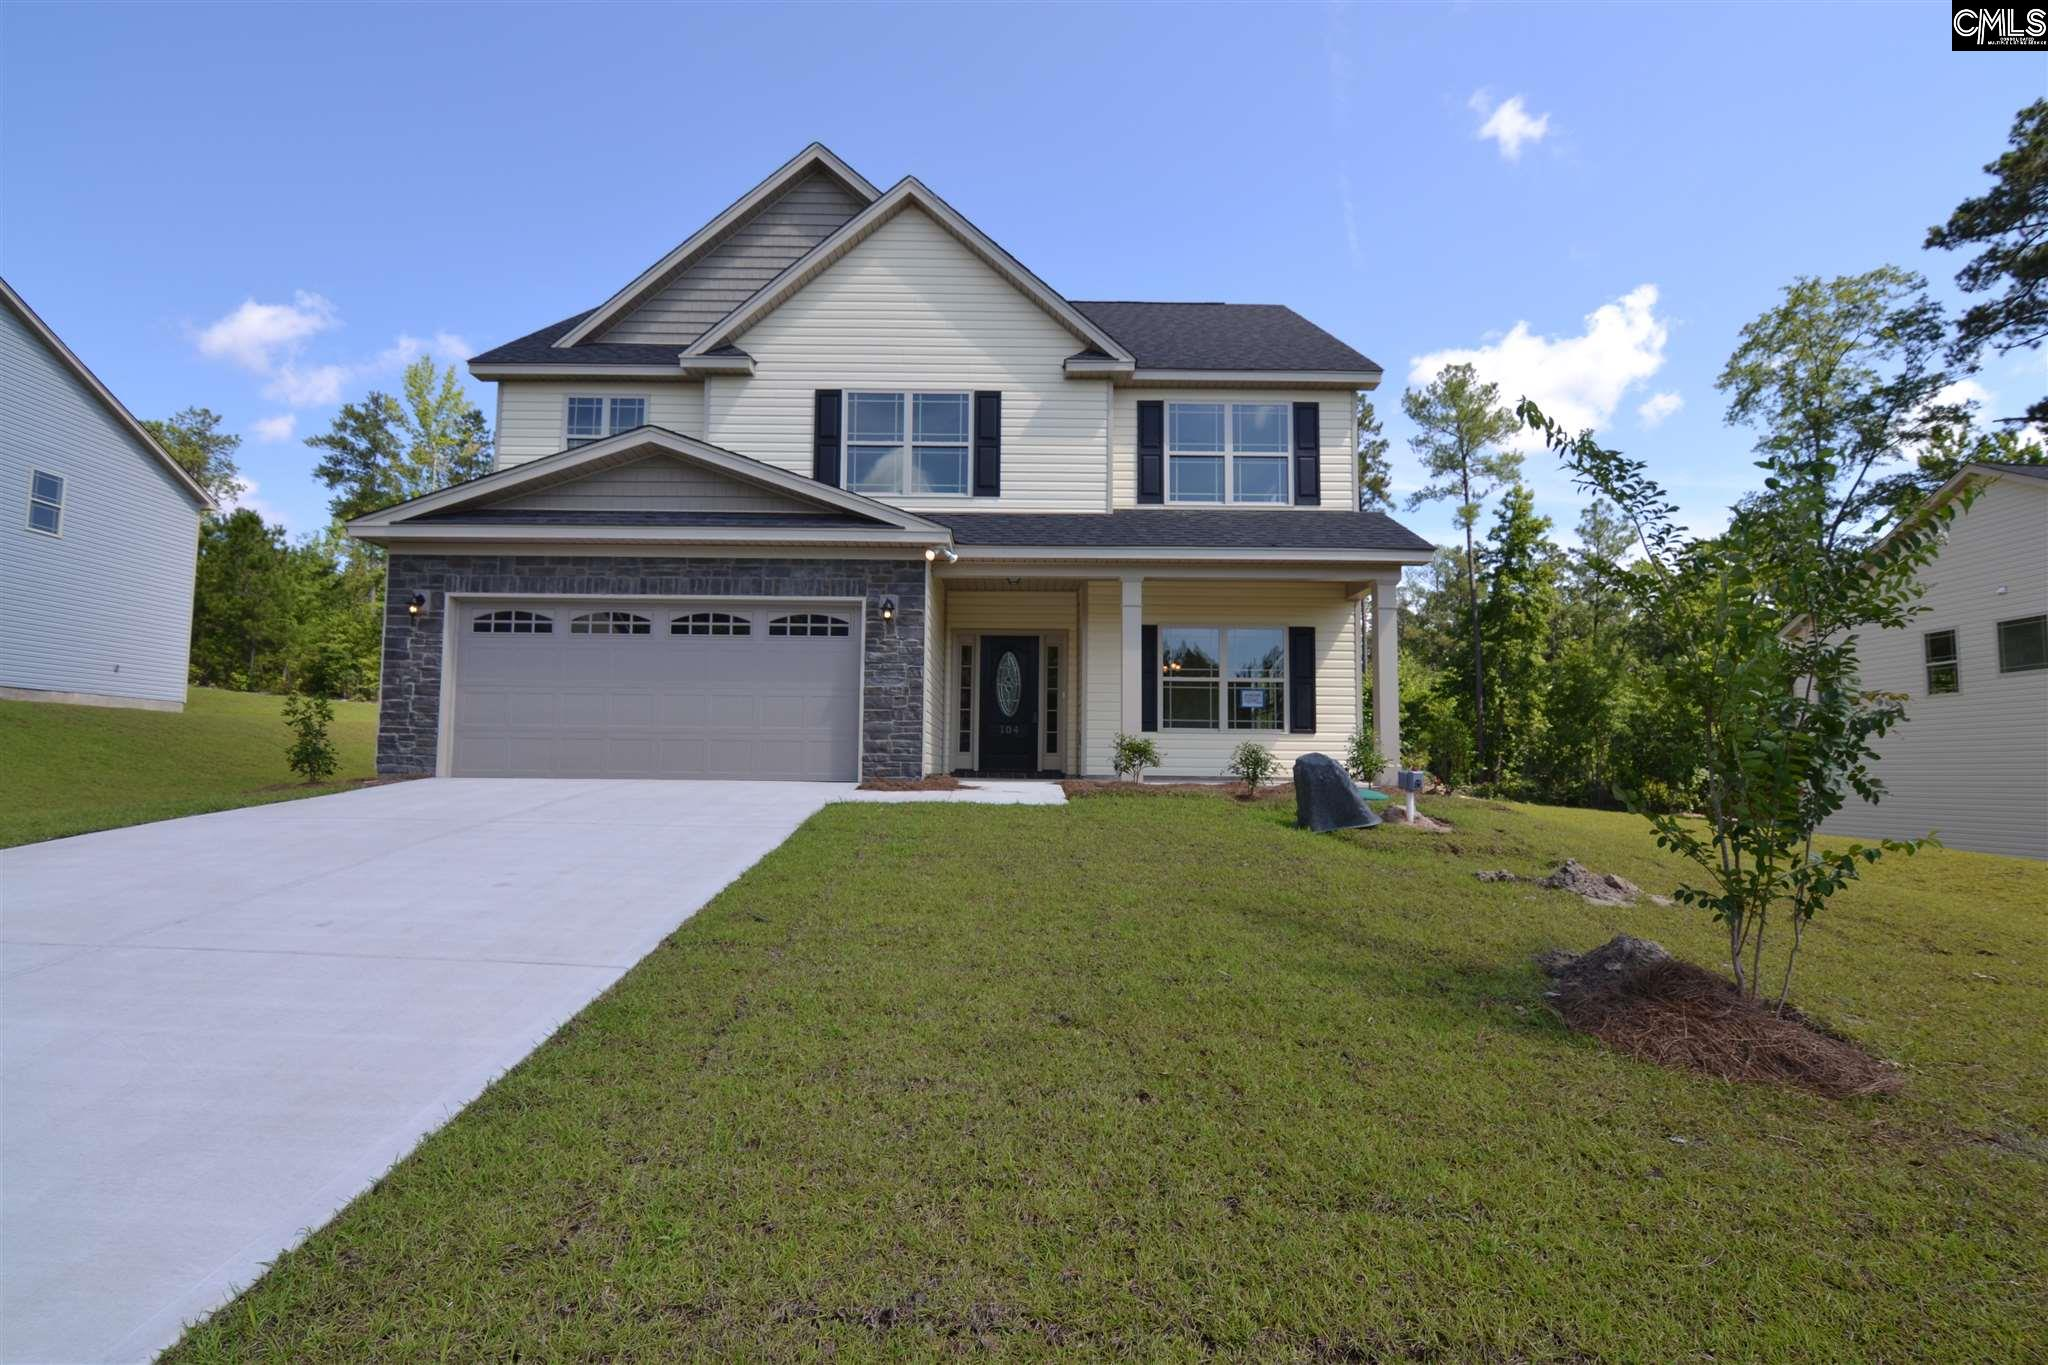 104 Tall Pines Gaston, SC 29053